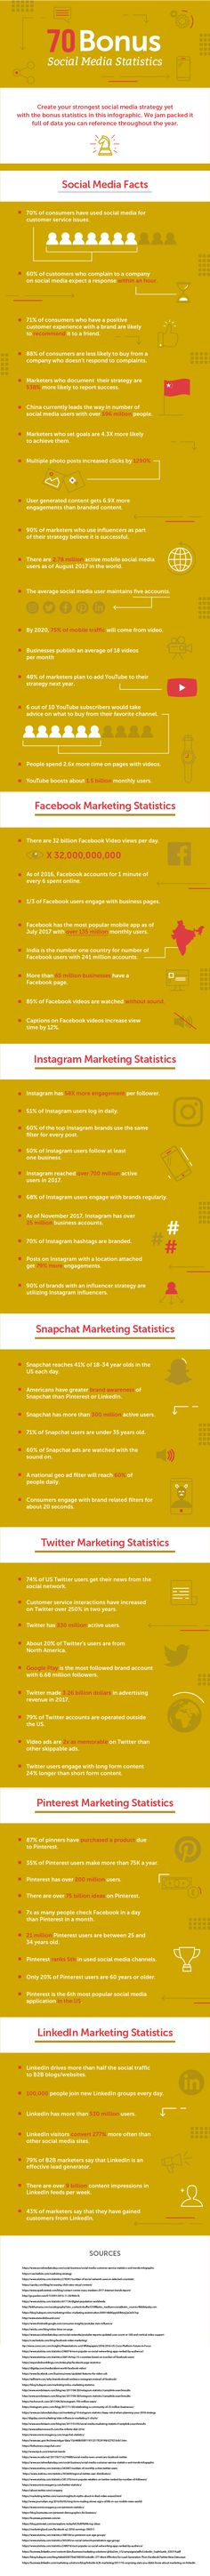 101 Social Media Marketing Statistics You Need To Know To Build Your 2018 Strategy - infographic